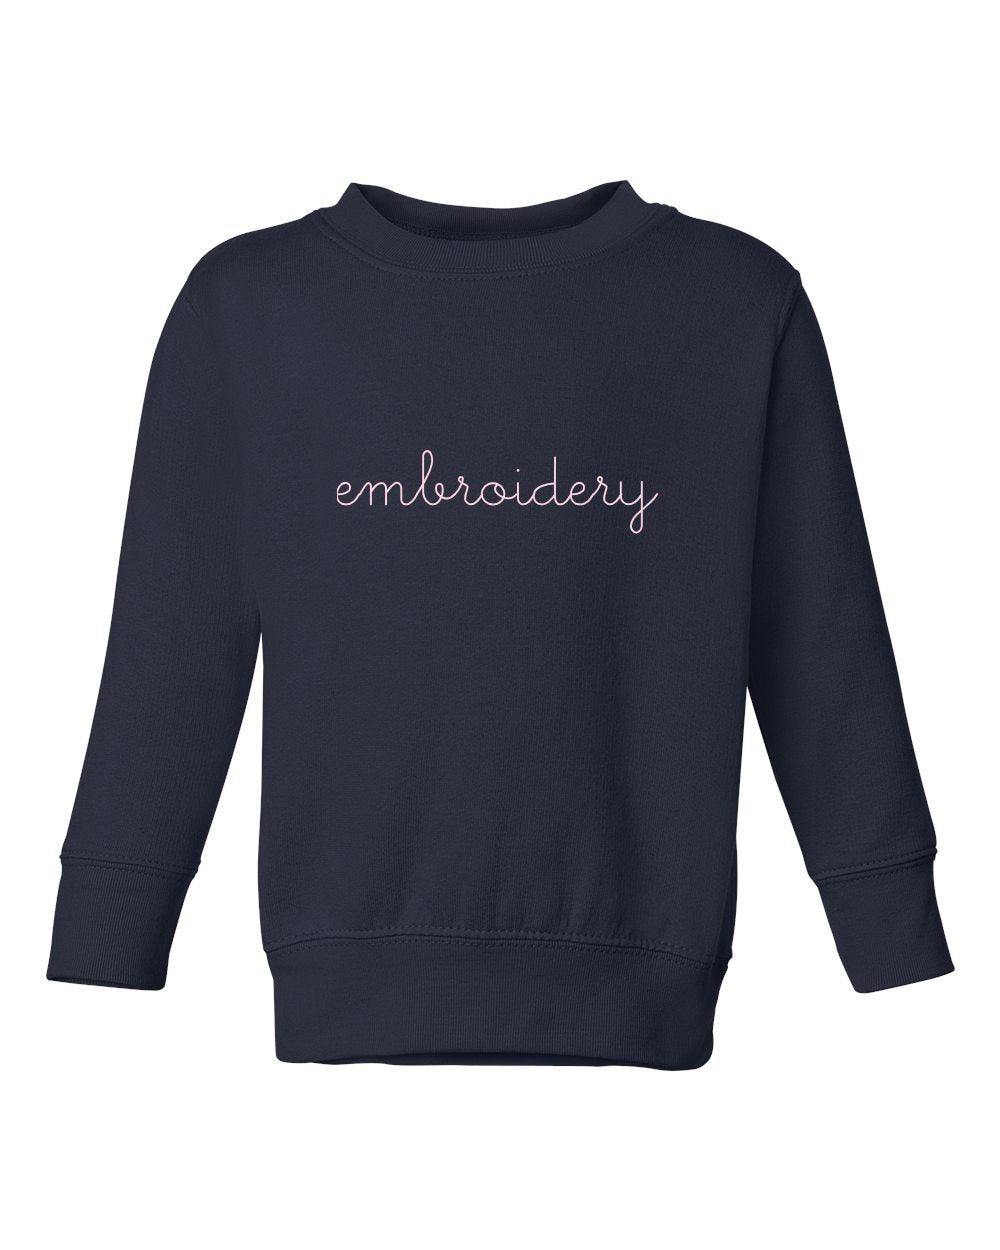 Baby Classic Crewneck Fleece Sweatshirt